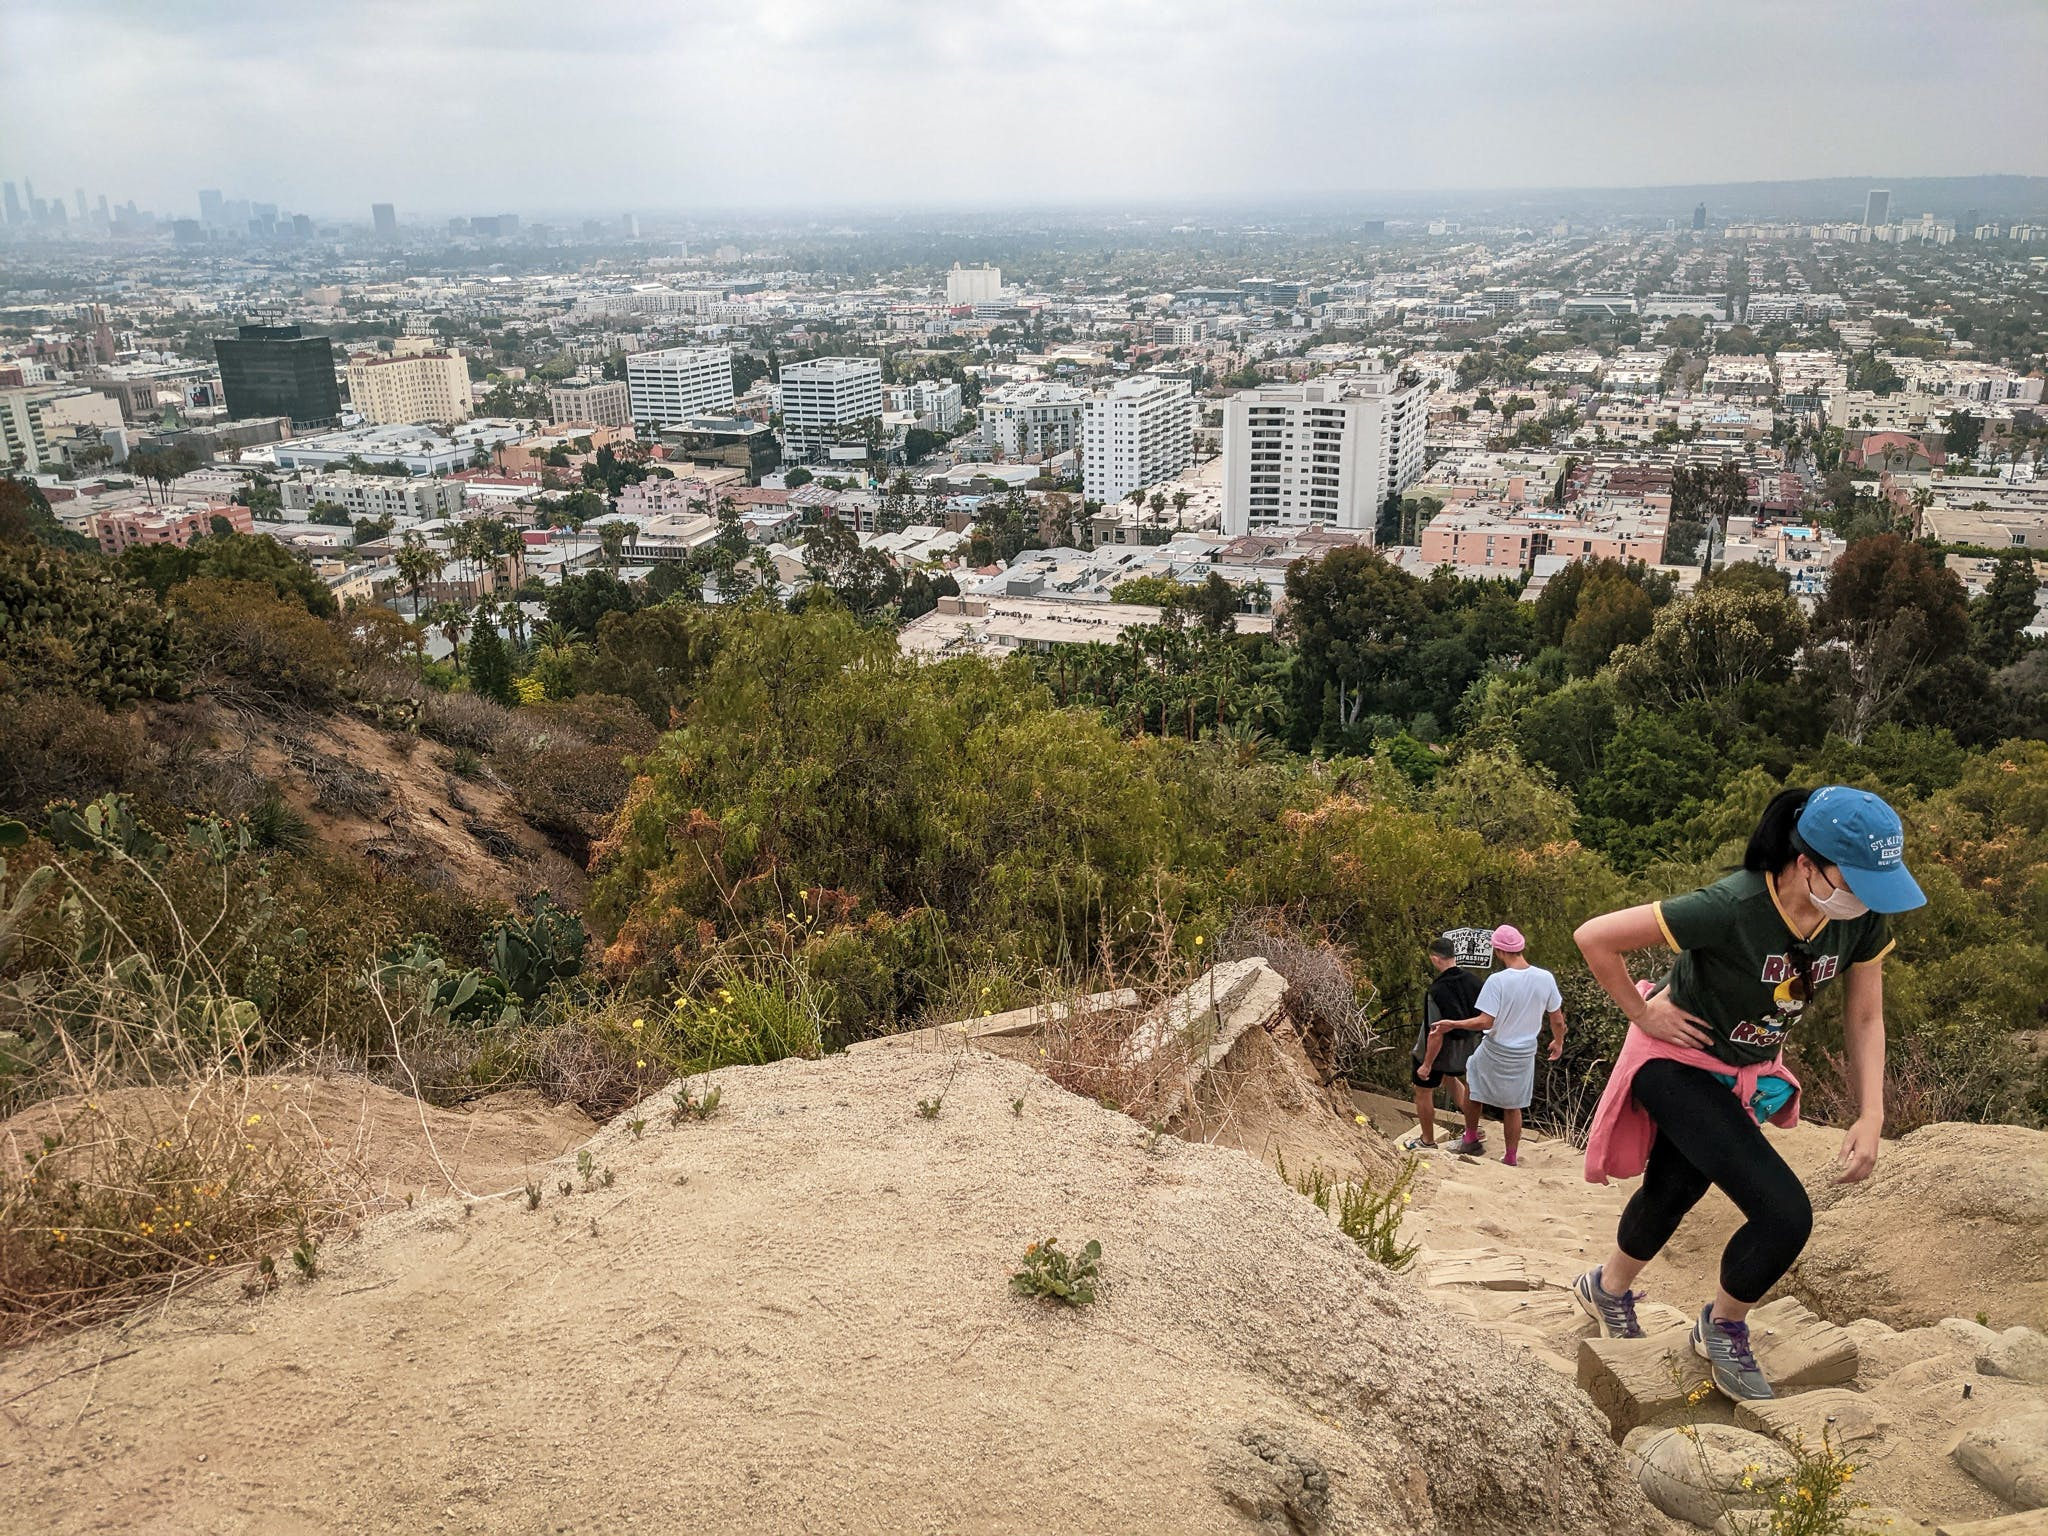 Hiker going uphill at Runyon Canyon with views of LA below in Los Angeles